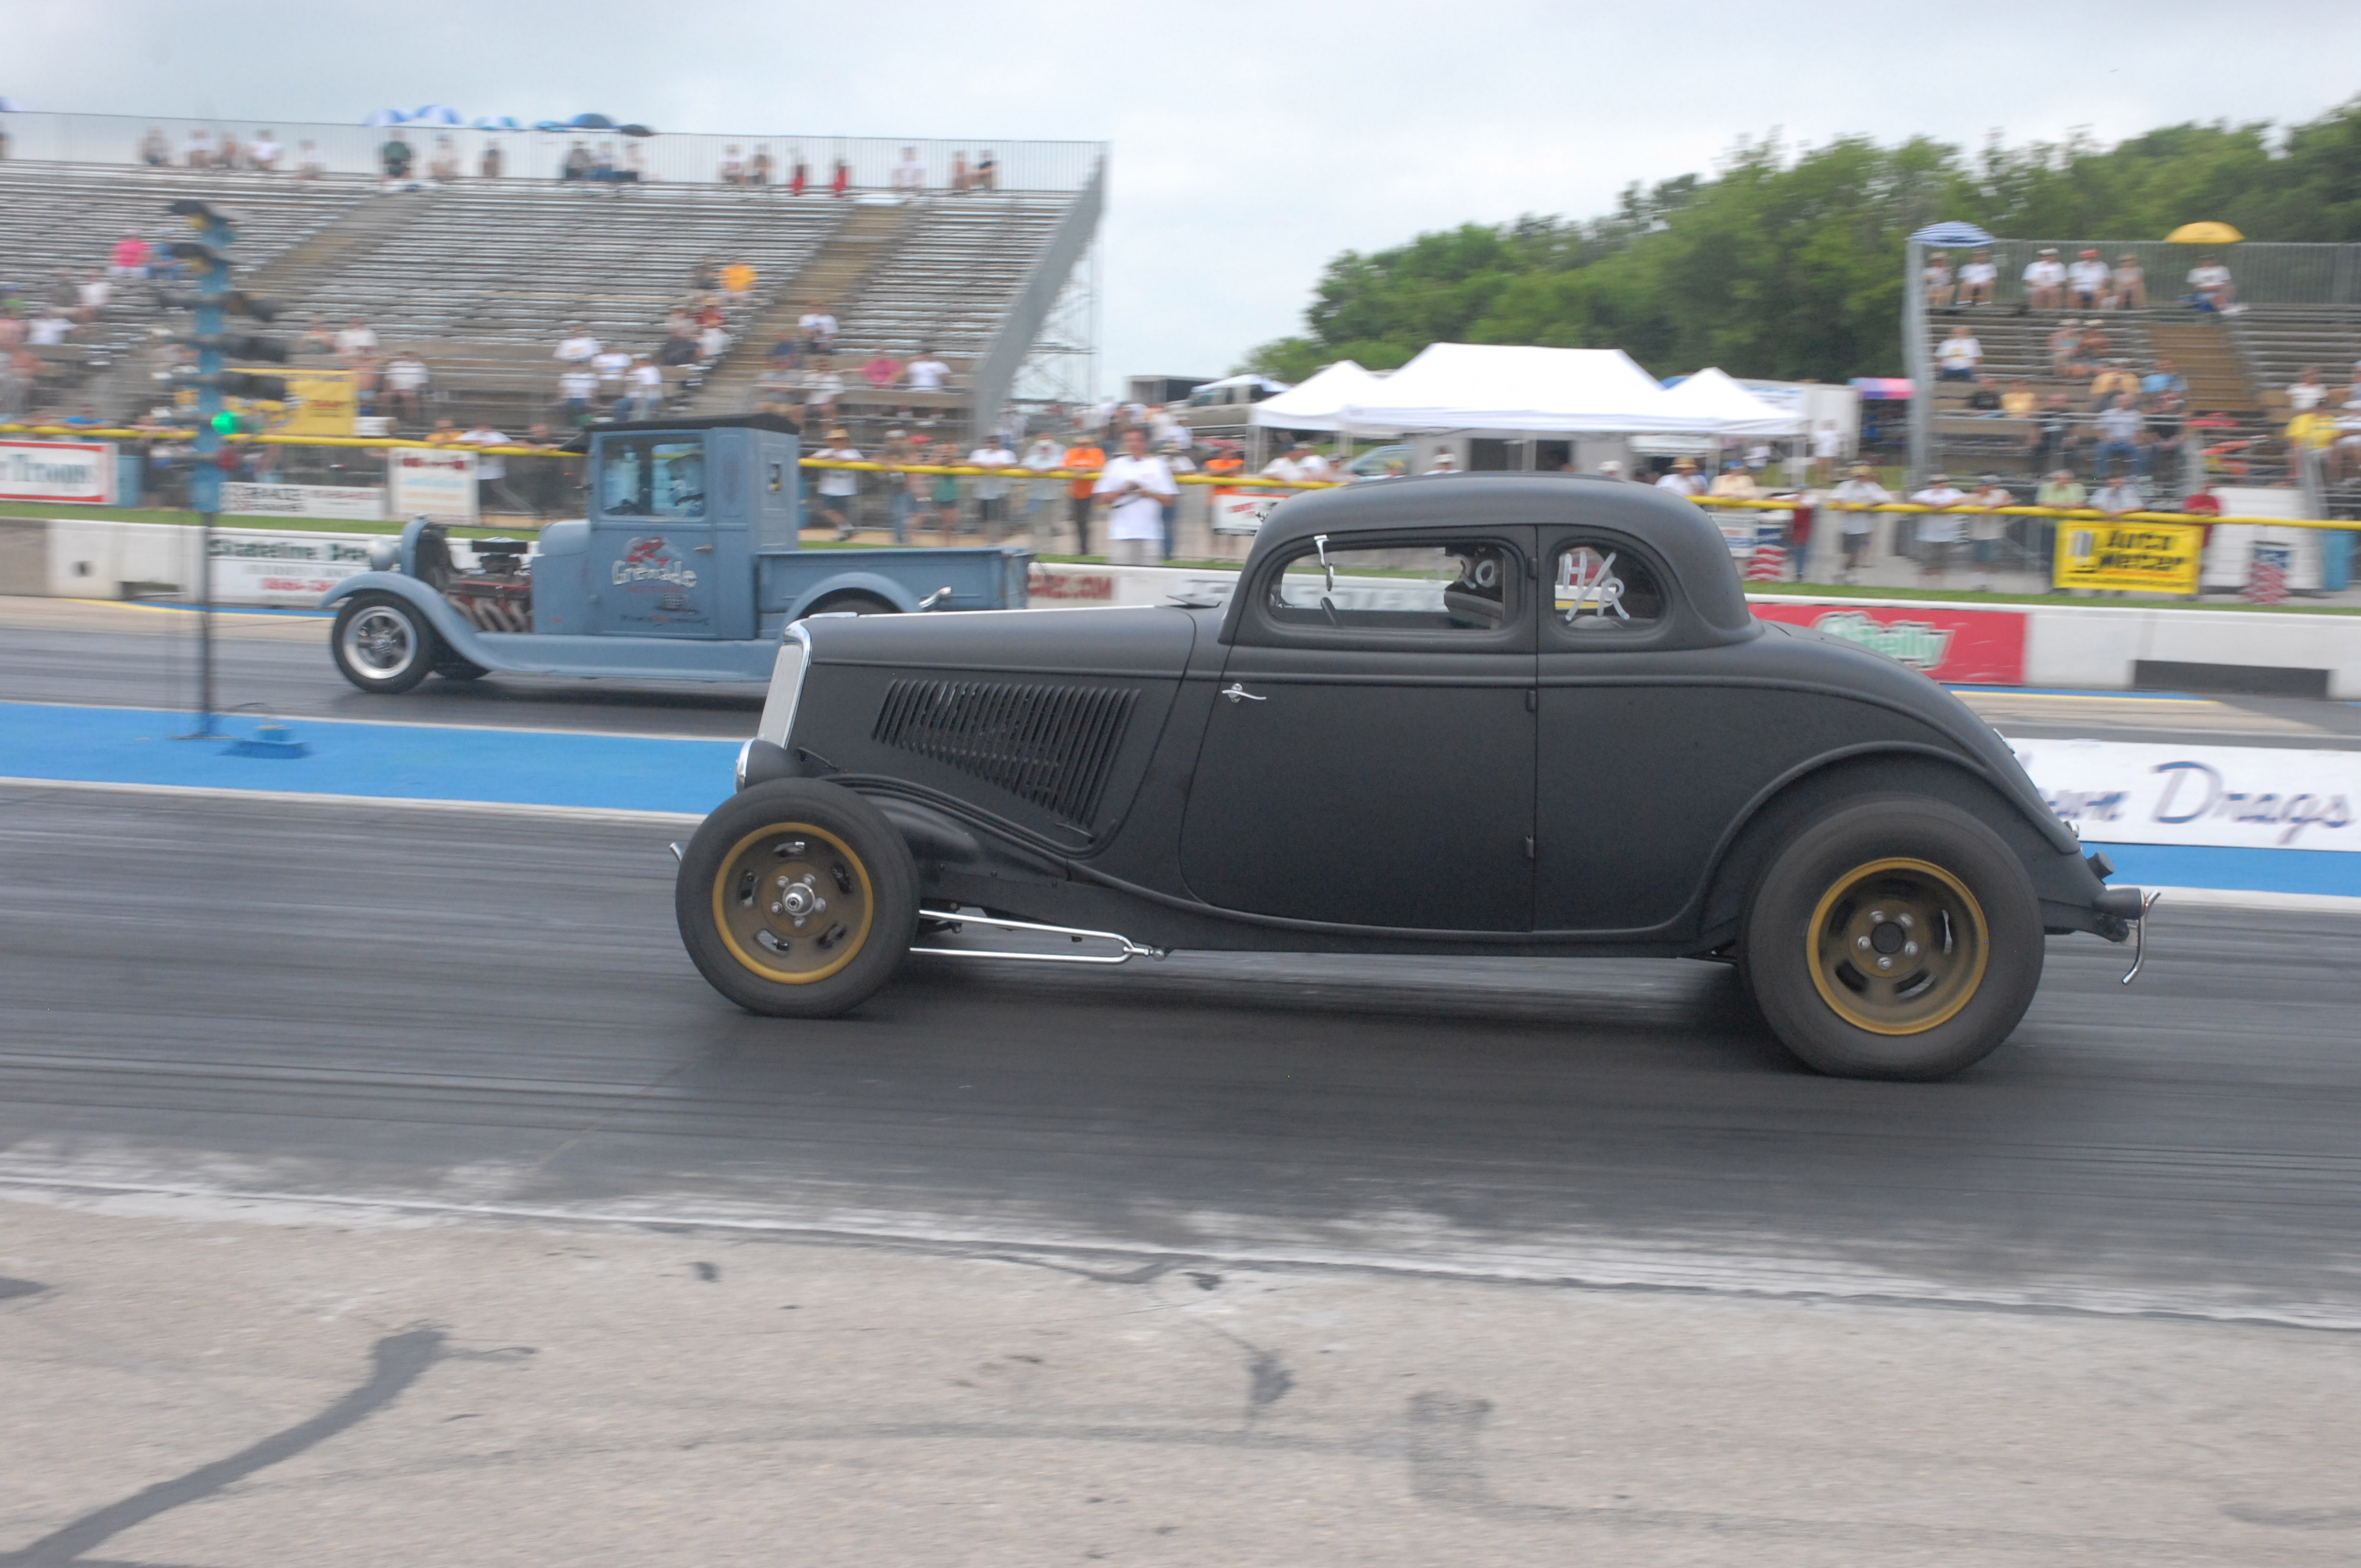 Cancer survivor Cheryl Kaiser, in her 1929 Model A pickup in the far lane, puts a sizeable holeshot on the '34 Ford coupe of Mark Stimeman. Cheryl has participated in all six Meltdown Drags events and made a total of 19 passes at Meltdown 2015. She is truly an amazing woman!